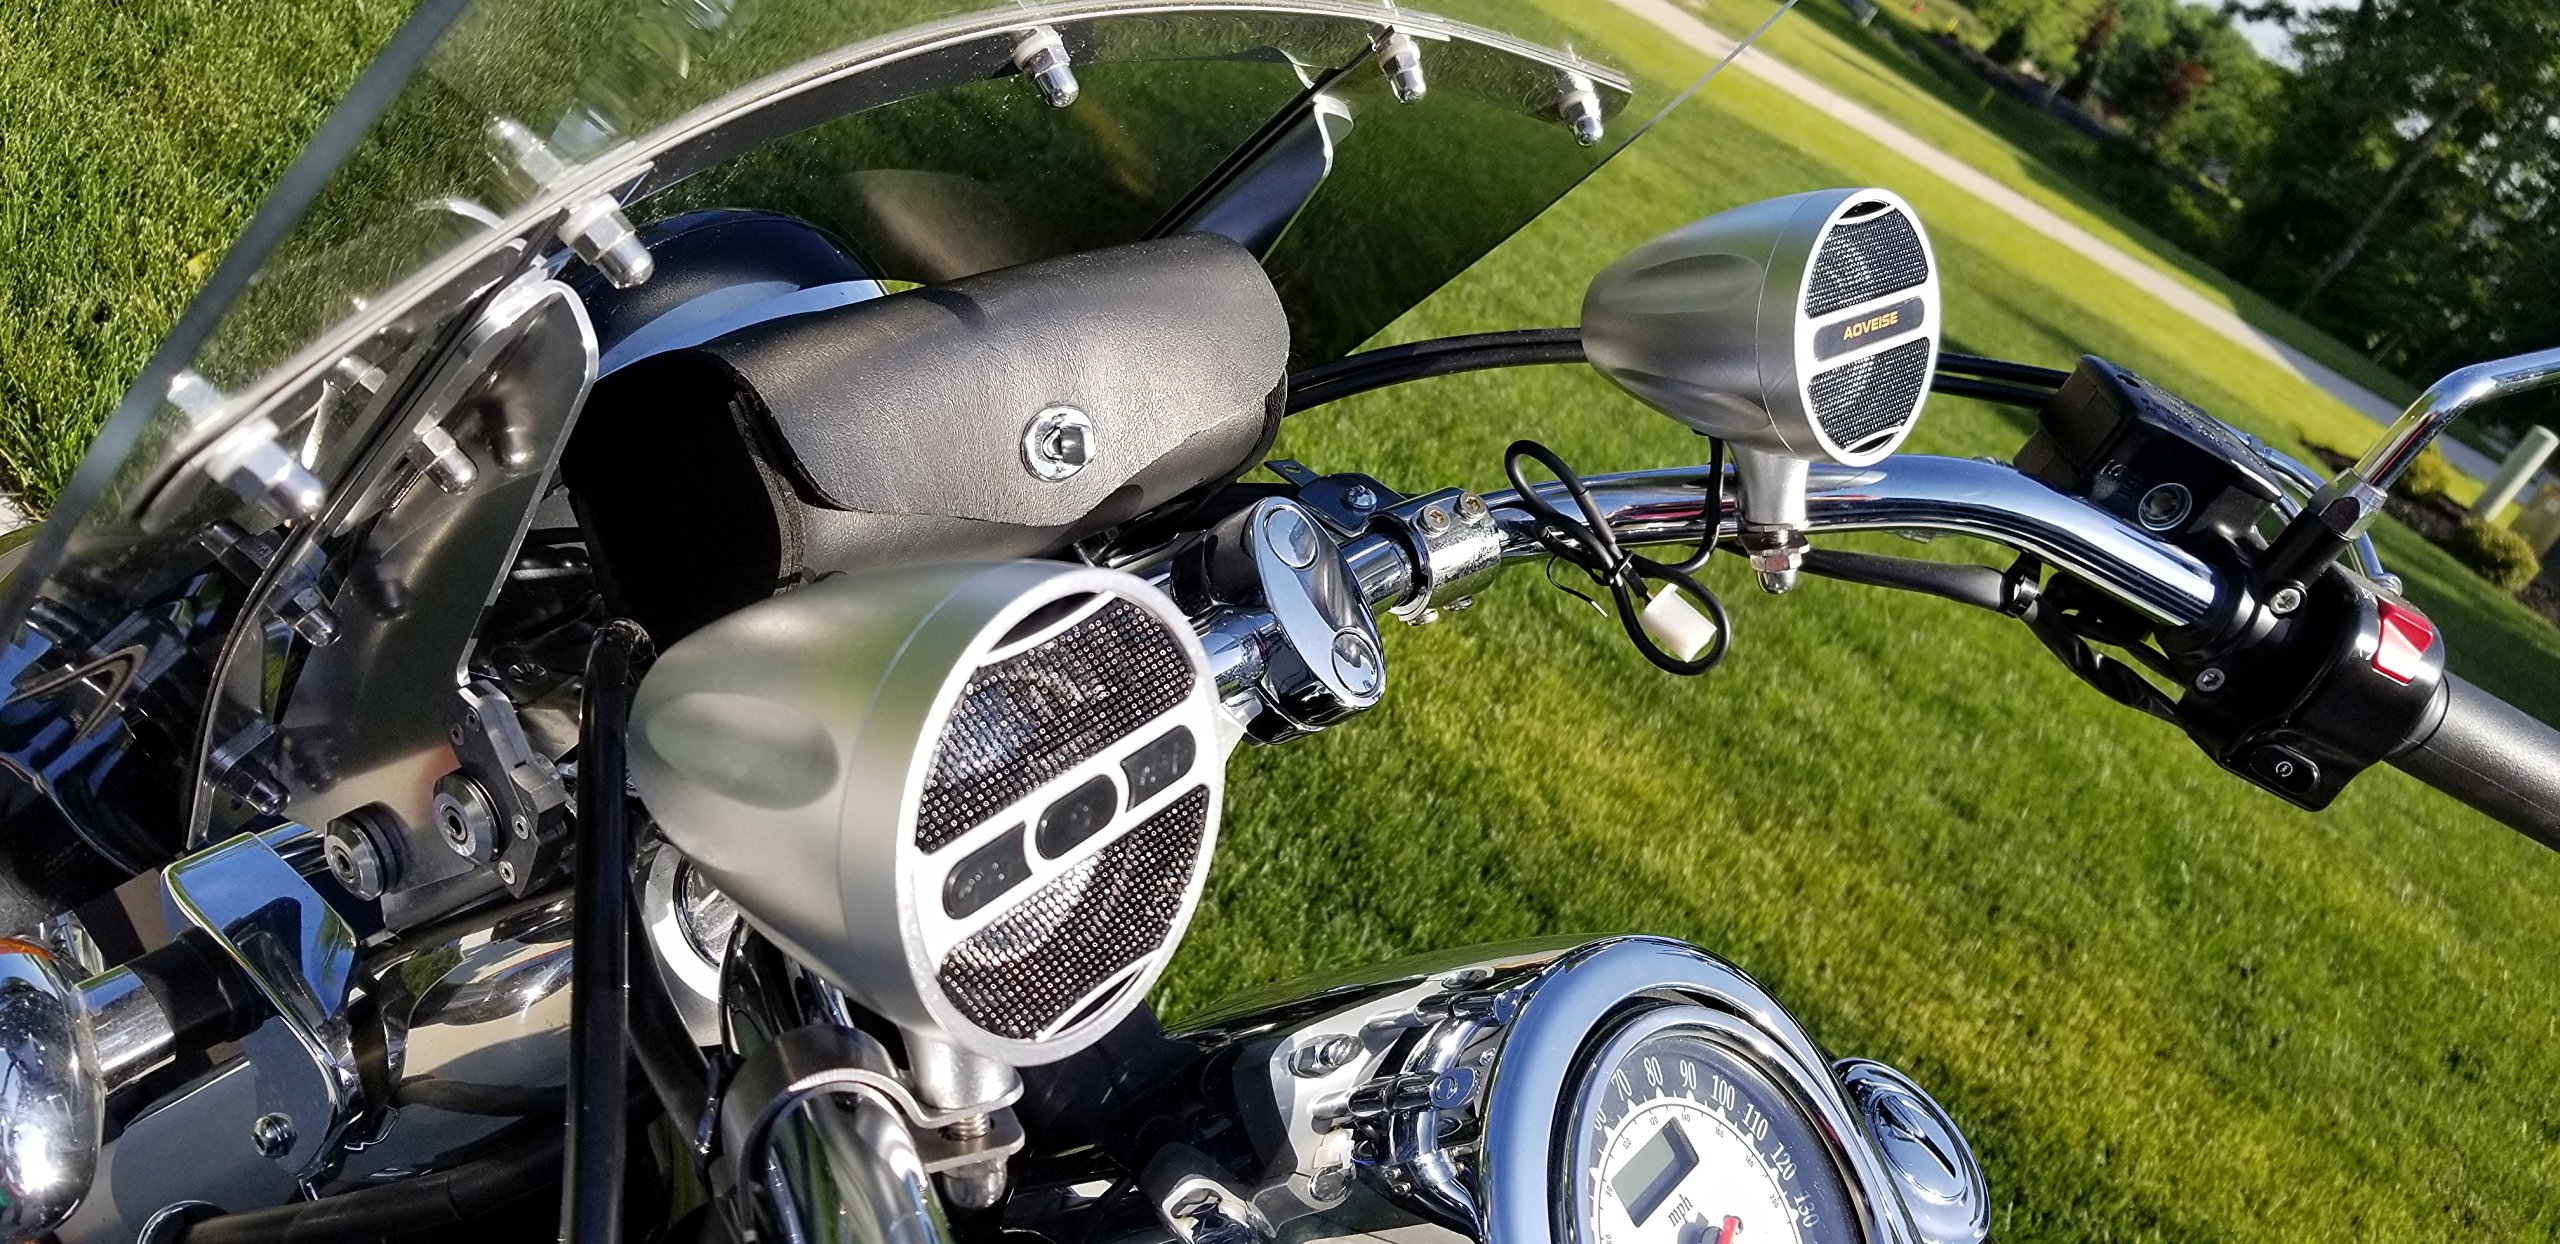 Firehouse Technology Boost Bluetooth Motorcycle Stereo Speaker System. 3'' Speaker, Built in Amp, Simple Install on all Bikes and ATV (Chrome)